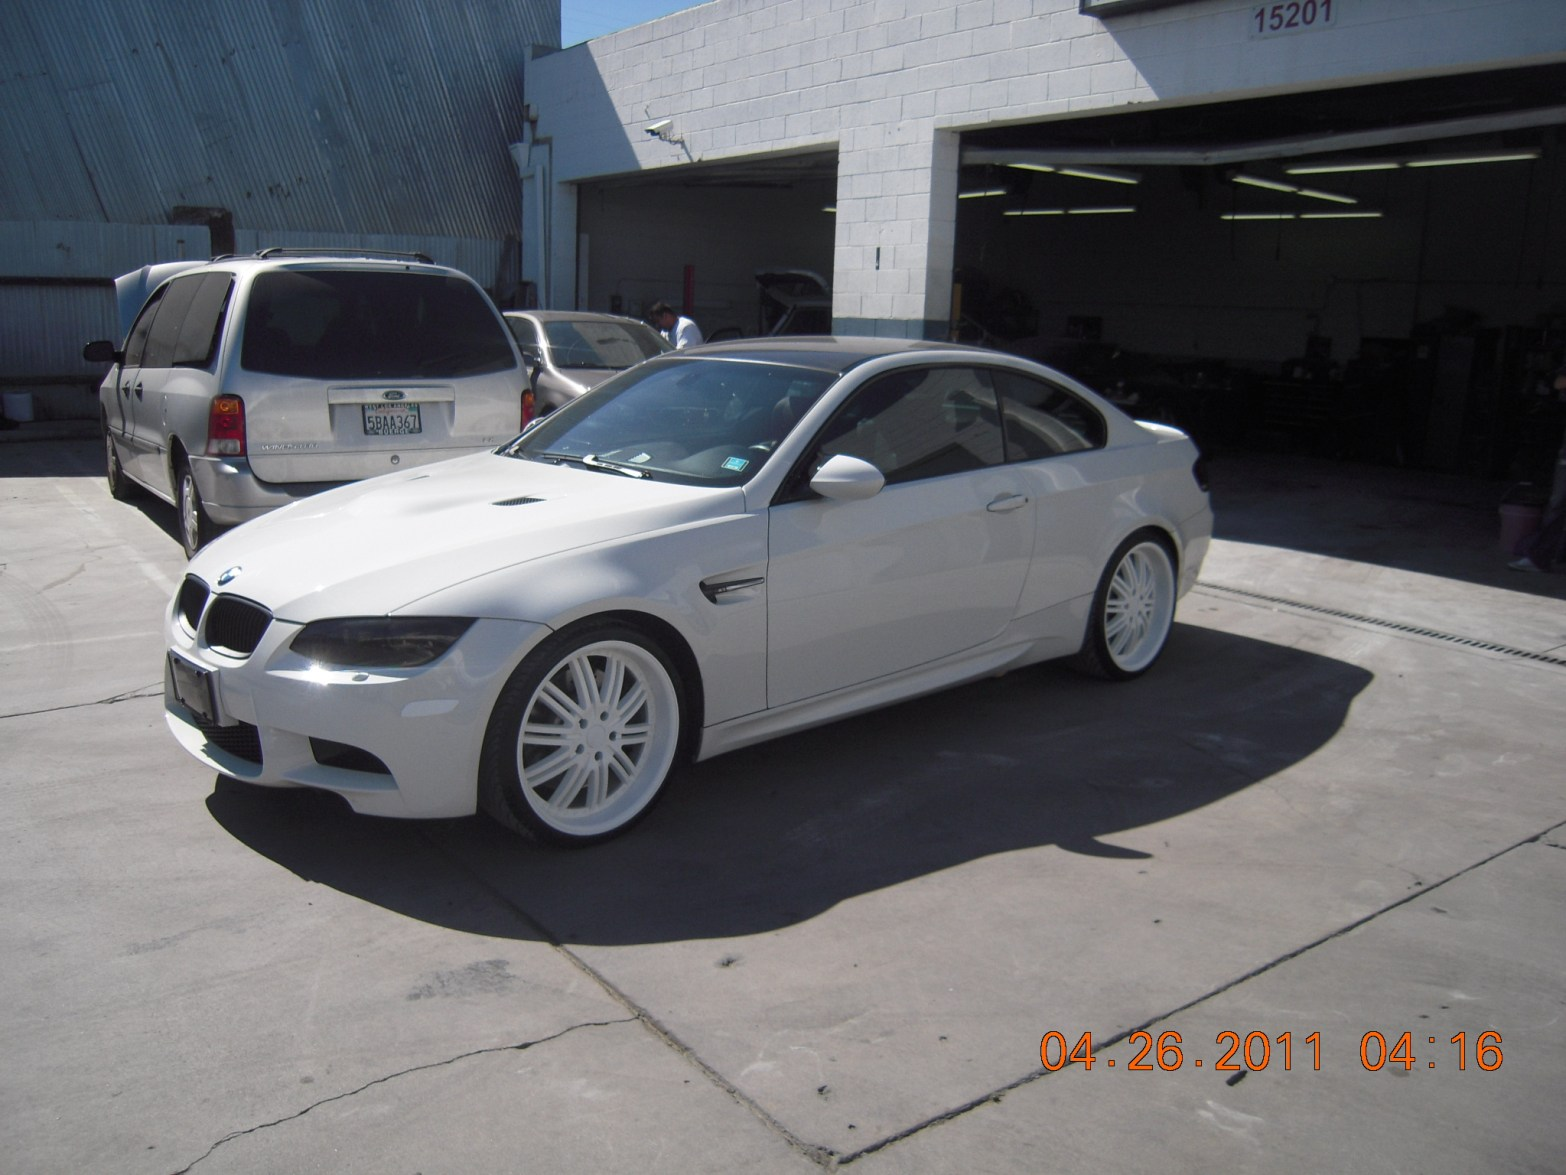 BMW Van Nuys >> BMW M3 Custom Paint | WEST COAST BODY AND PAINT | Auto Body Shop | Collision Repair | Car ...